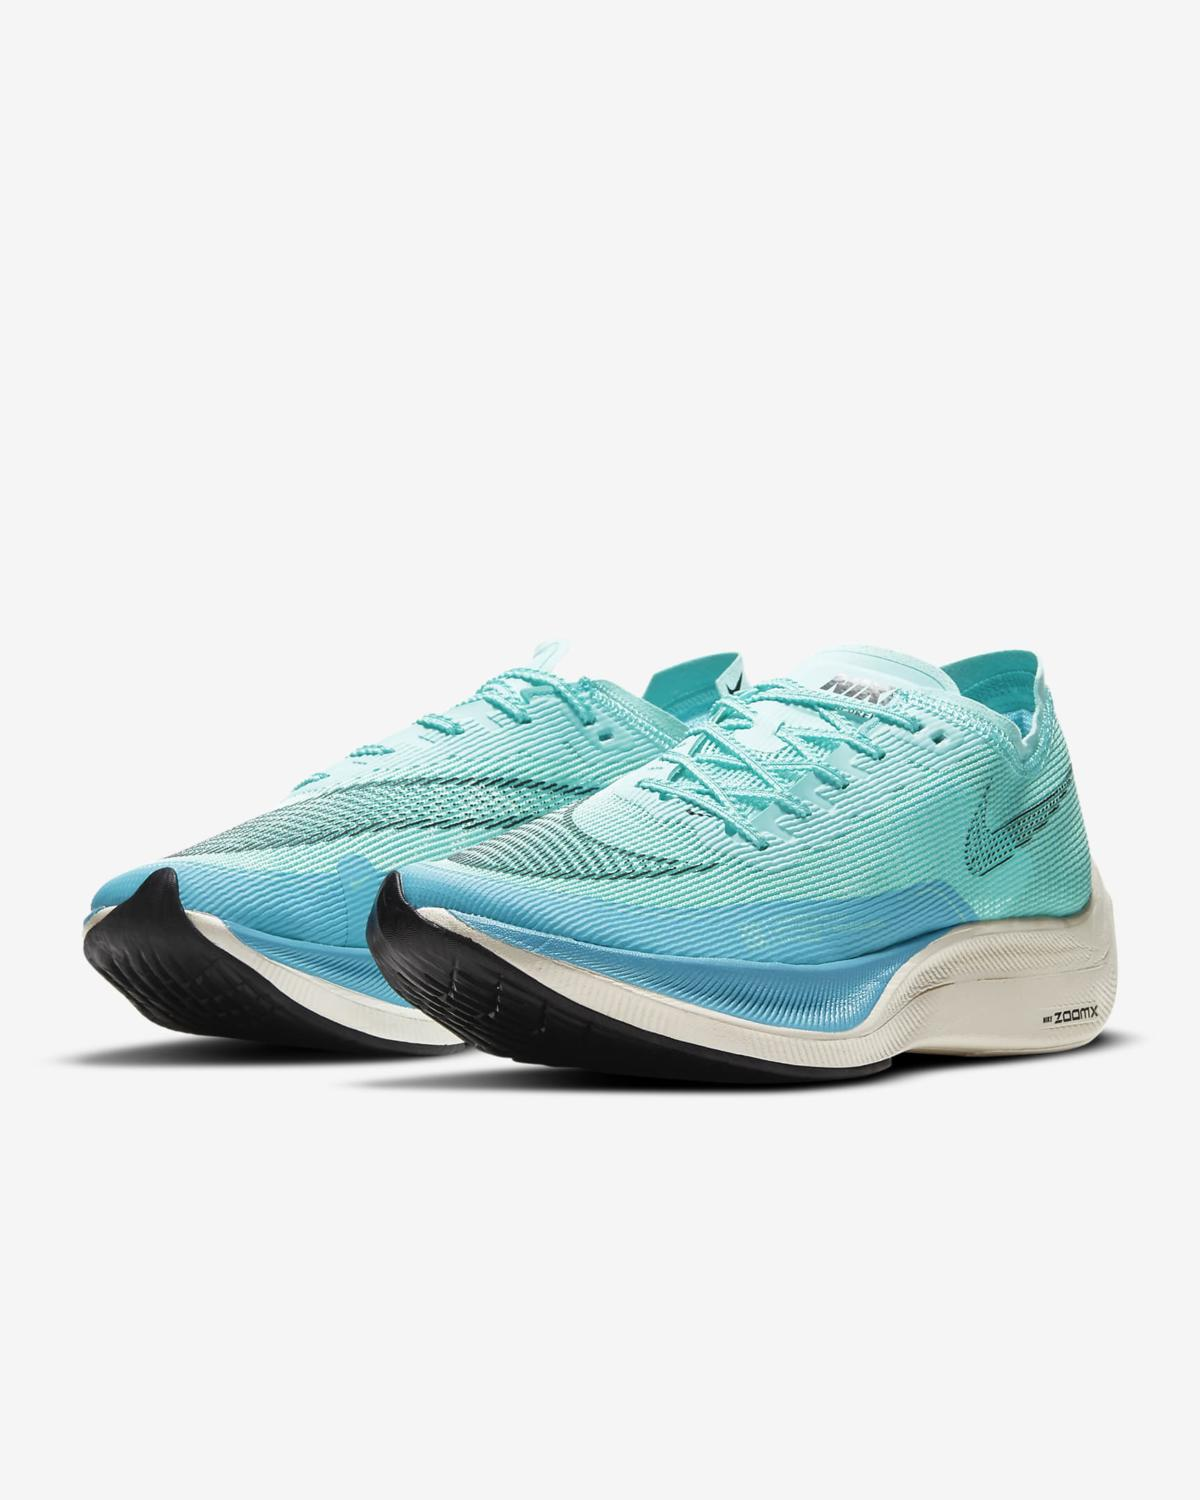 zoomx-vaporfly-next-2-racing-shoe-D4ntS0 (3)